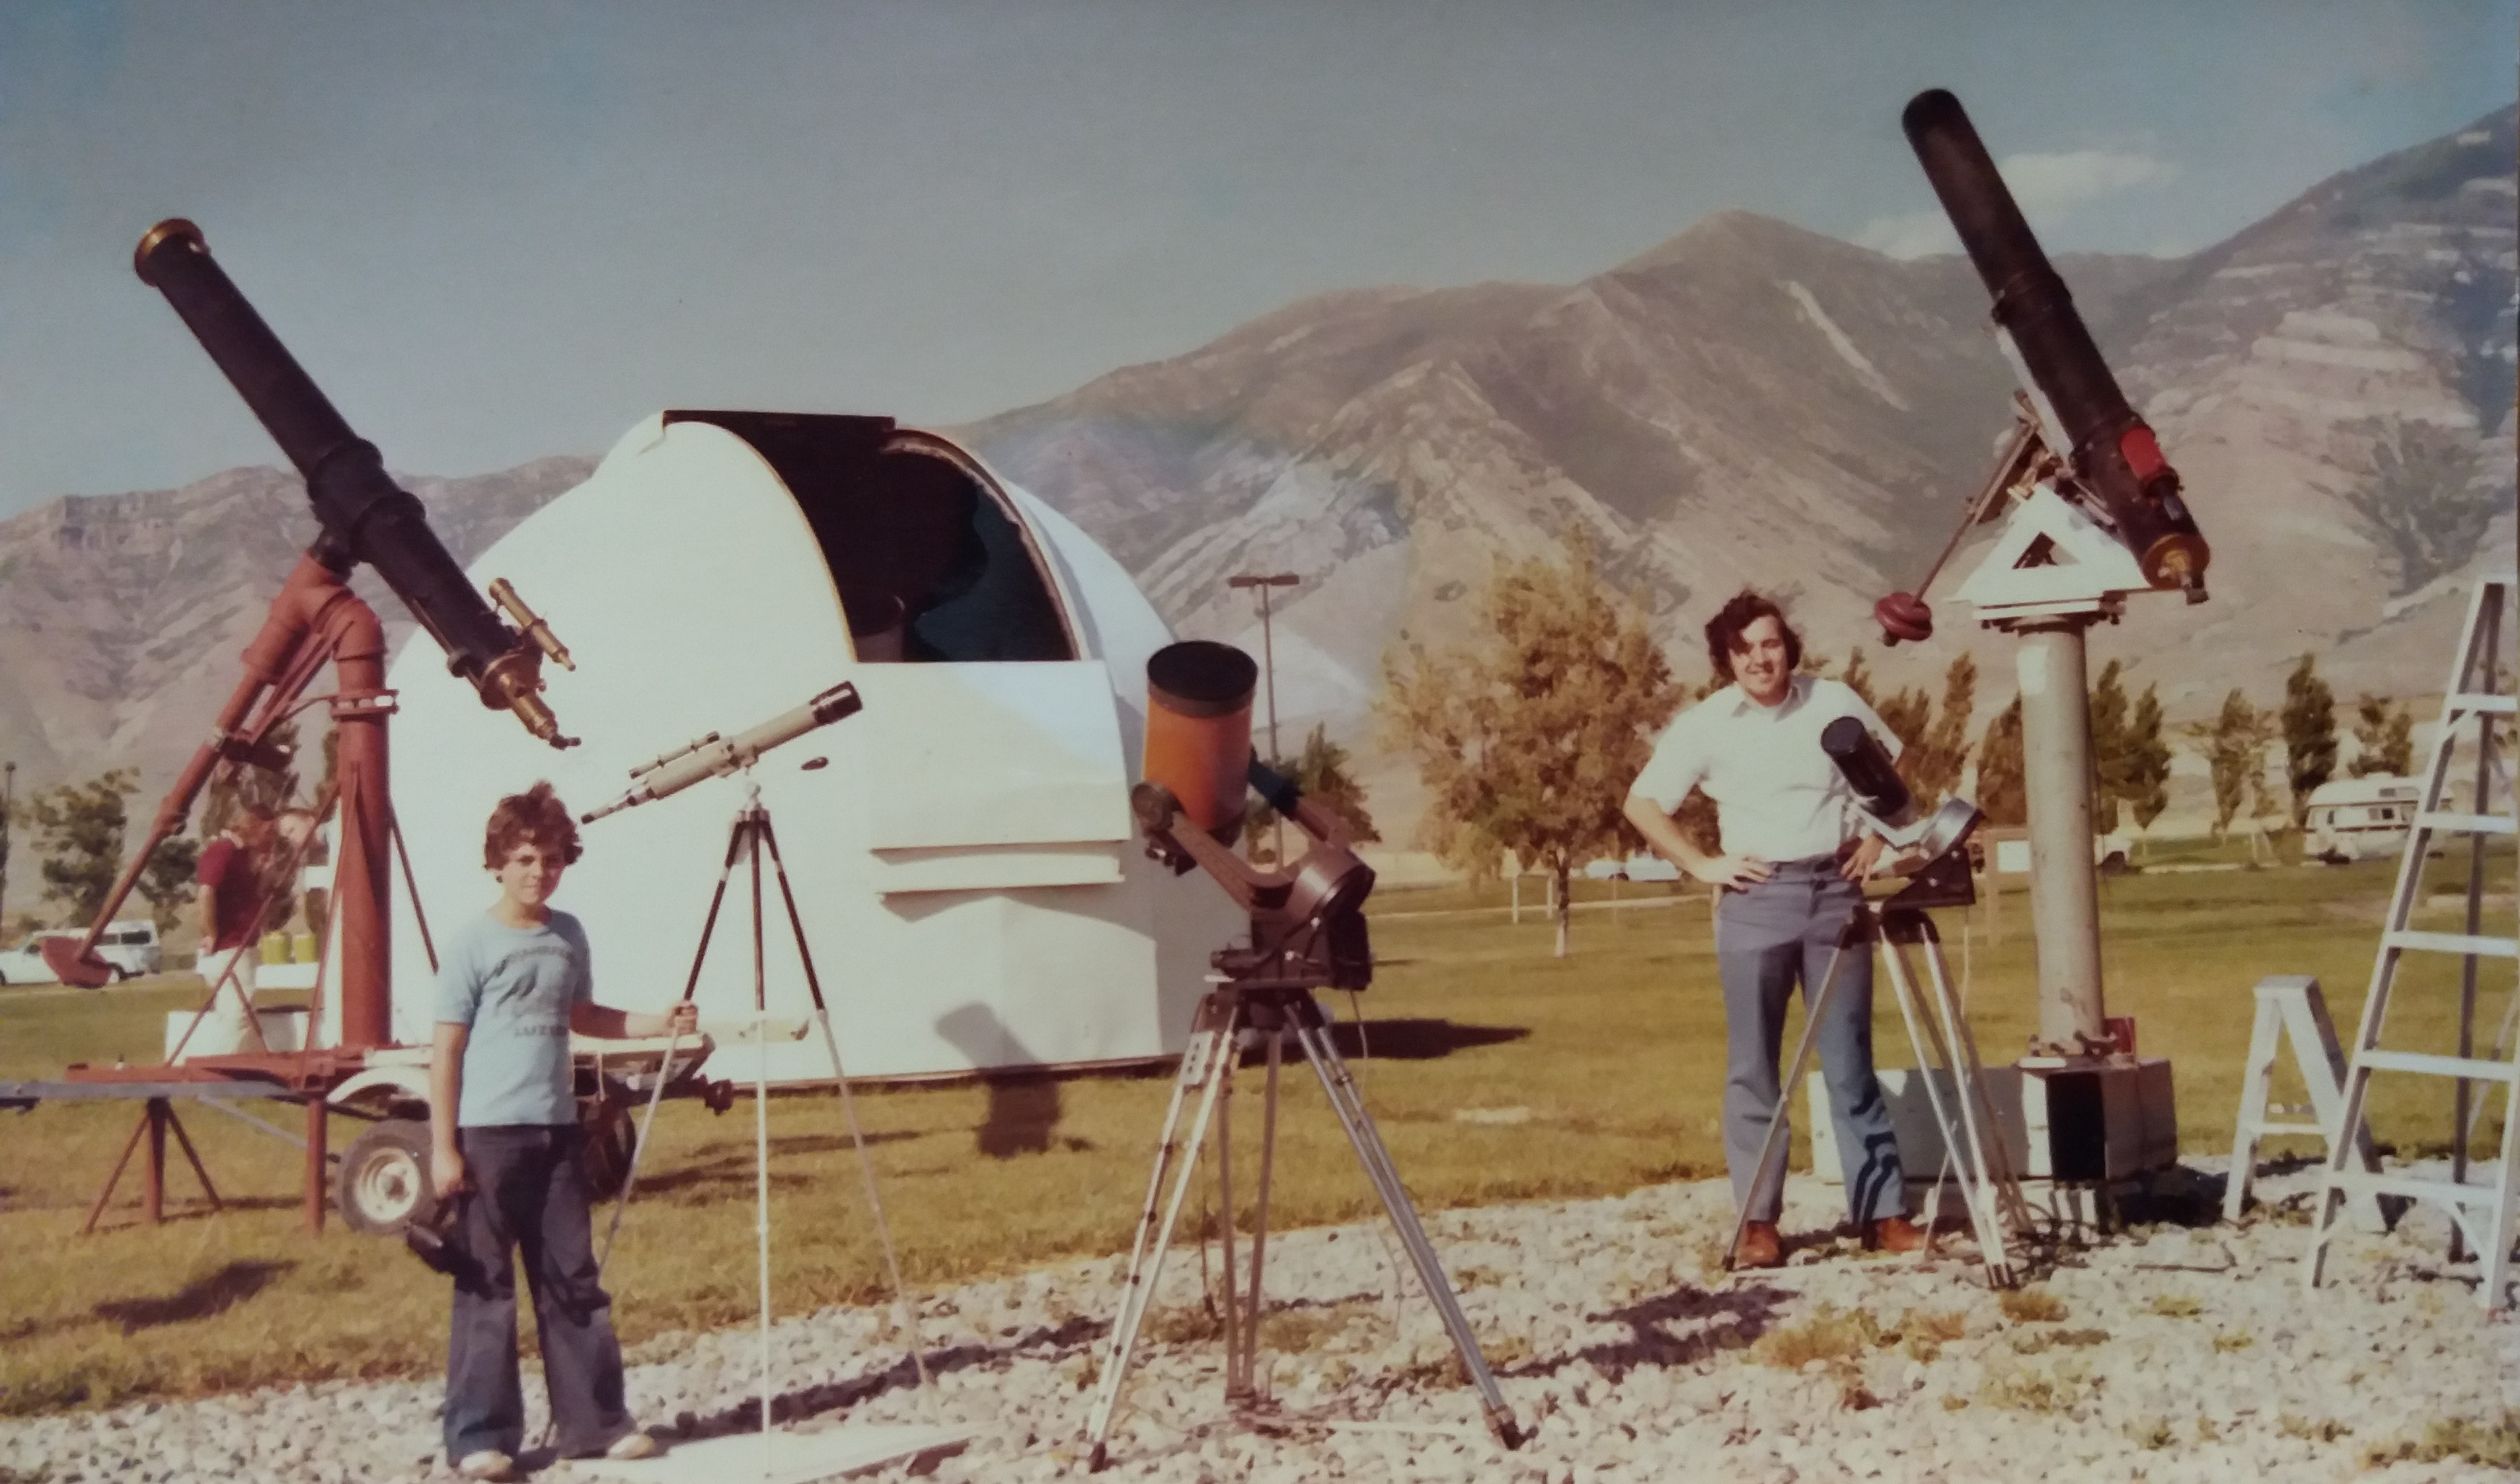 Large and small astronomical telescopes, standing near a white observatory dome. One adult to the right, on the left, a child with a telescope taller than him, frizzy brown hair, blue t-shirt, bell-bottom jeans and sneakers. Late afternoon sun, mountains in the background.